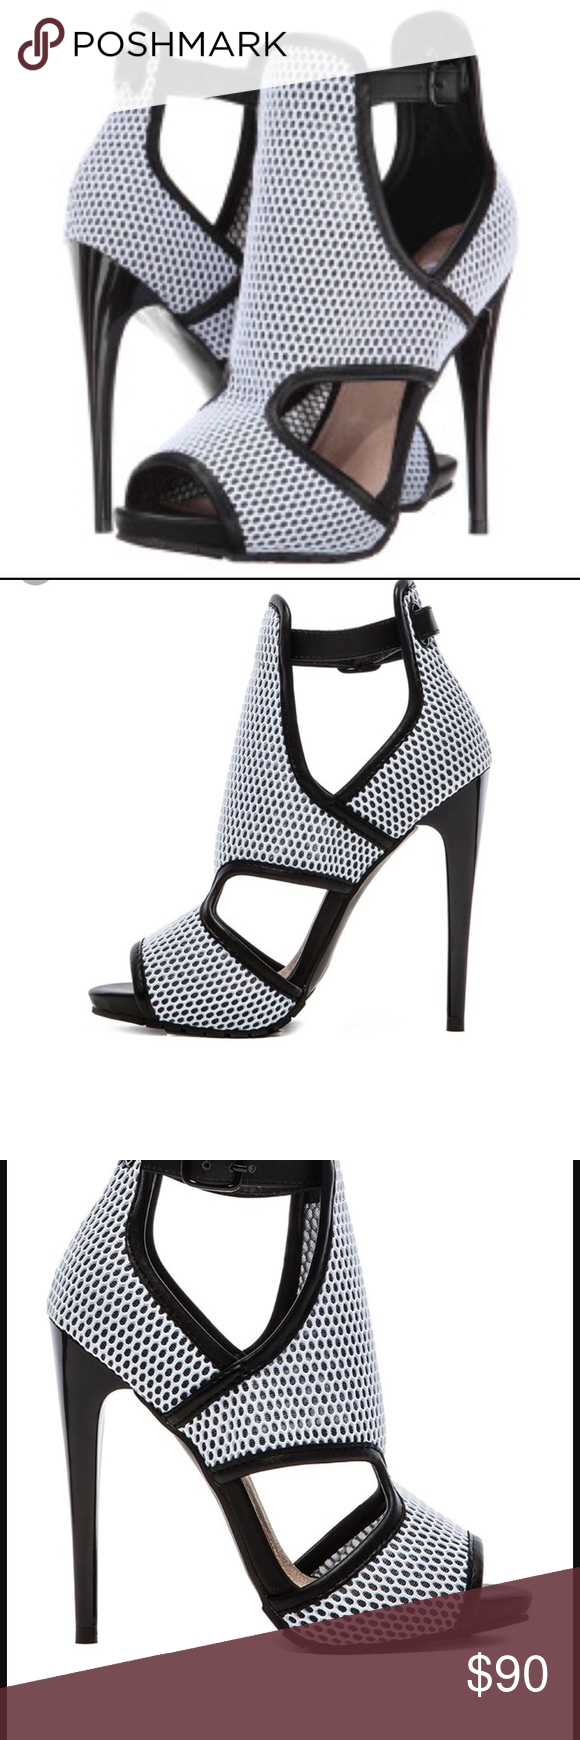 6697e7a44a6 Steve Madden X Iggy Azalea brixxton heels Brand new in box. Get brave in  the daring Brixxton. Iggy Azalea by Steve Madden features a white mesh  upper with ...